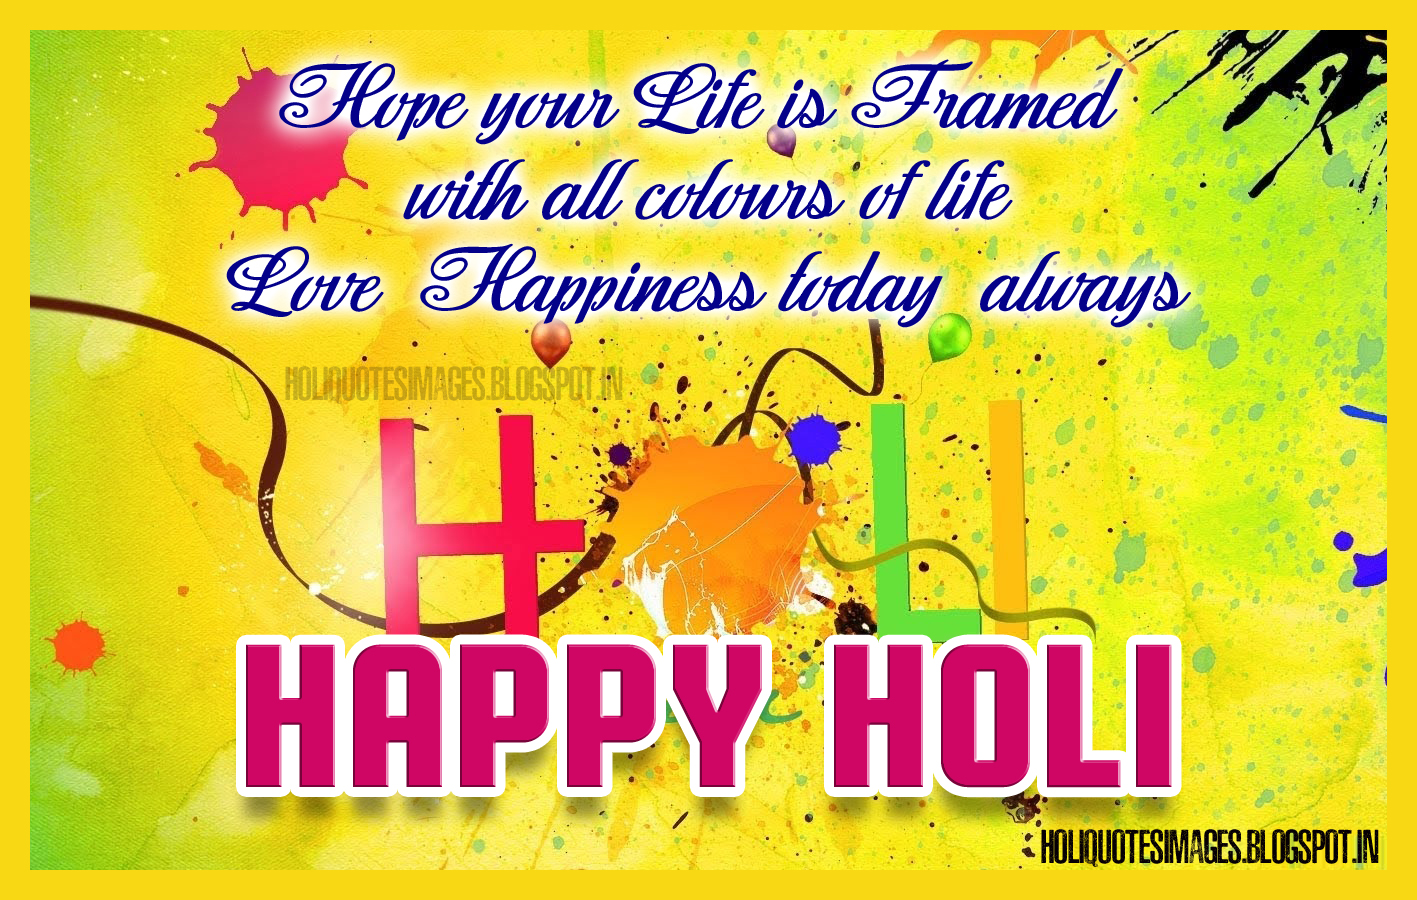 Happy Holi Quotes Images And Greetings Hd Wallpapers Free Downloads